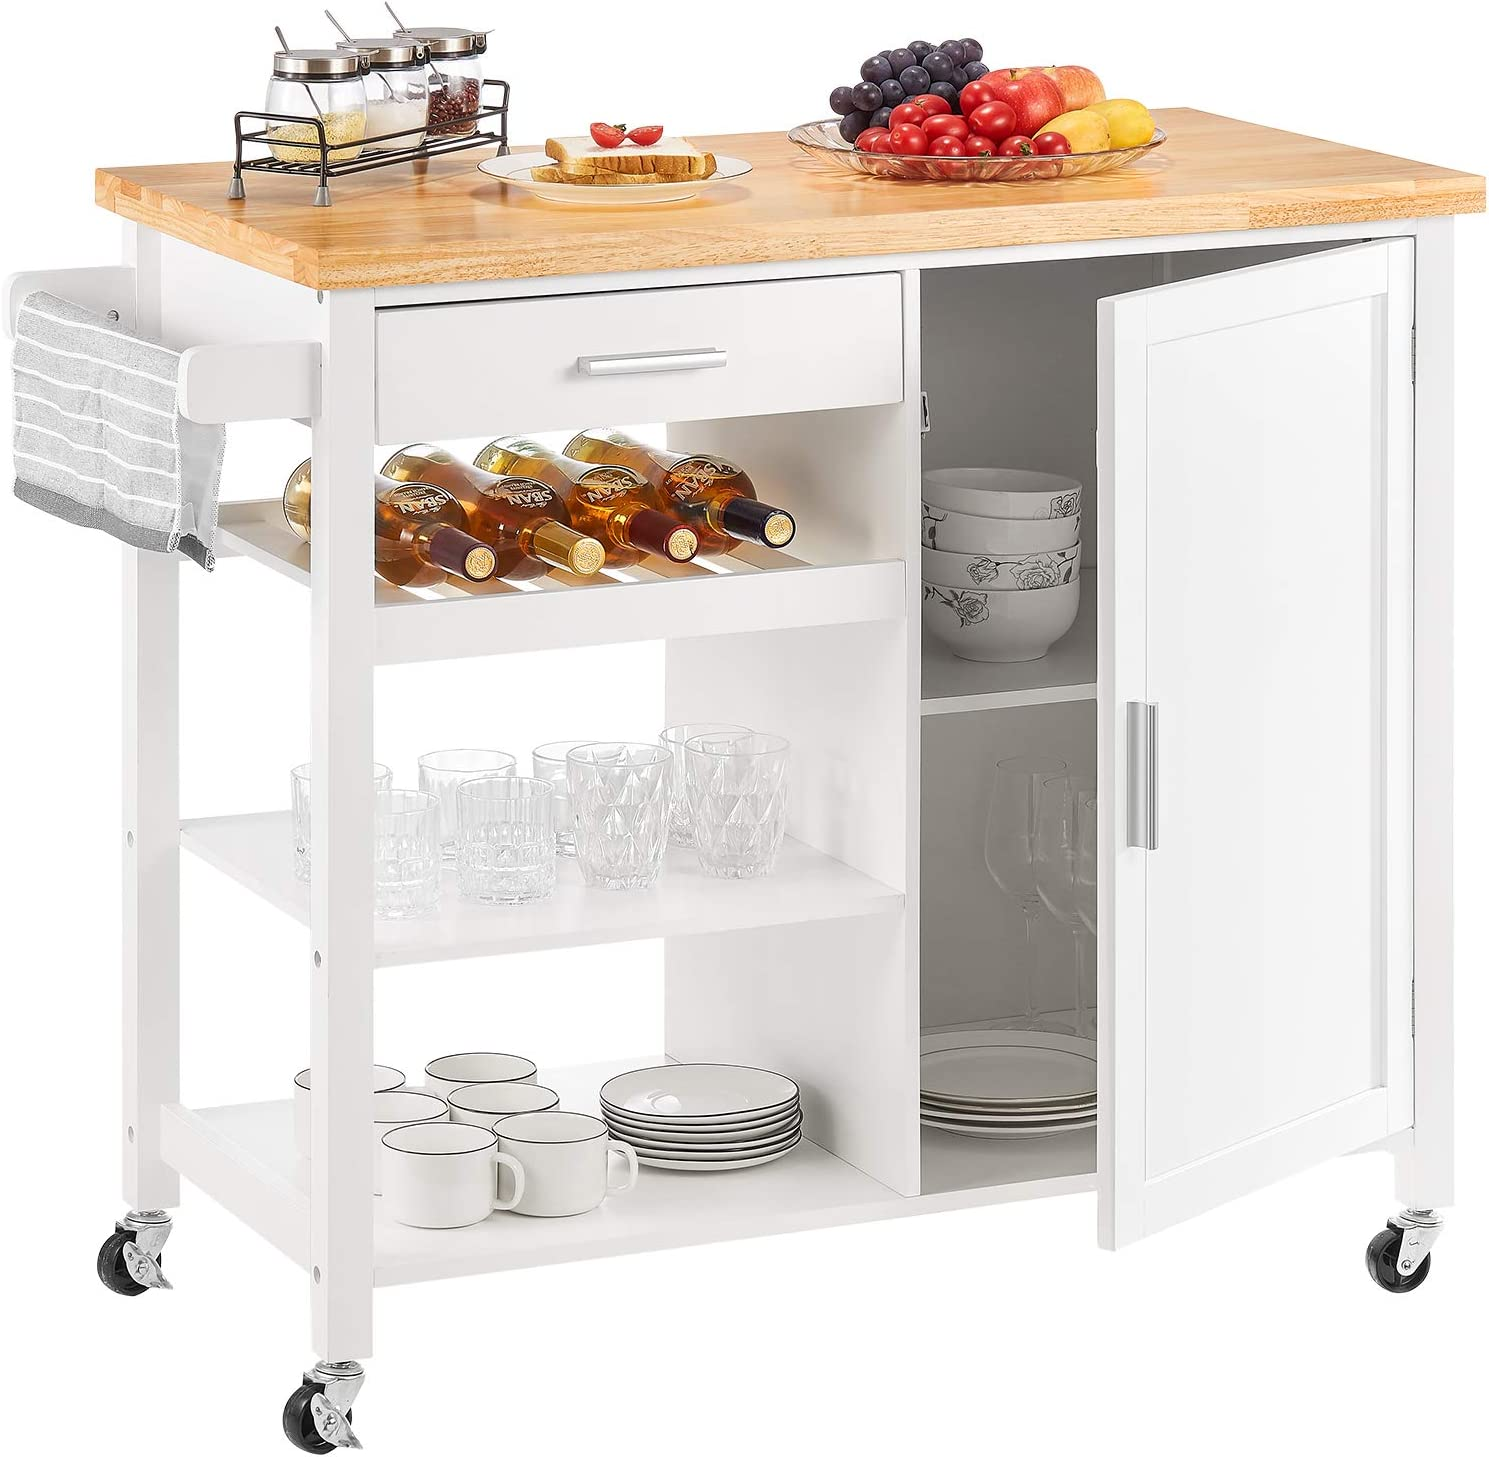 Kealive Kitchen Island On Wheels Rolling Kitchen Island With Storage Wooden Mobile Island For Home Style Wood Top Drawer Handle Rack Brown 41 3l X 18 9w X 35h Kitchen Islands